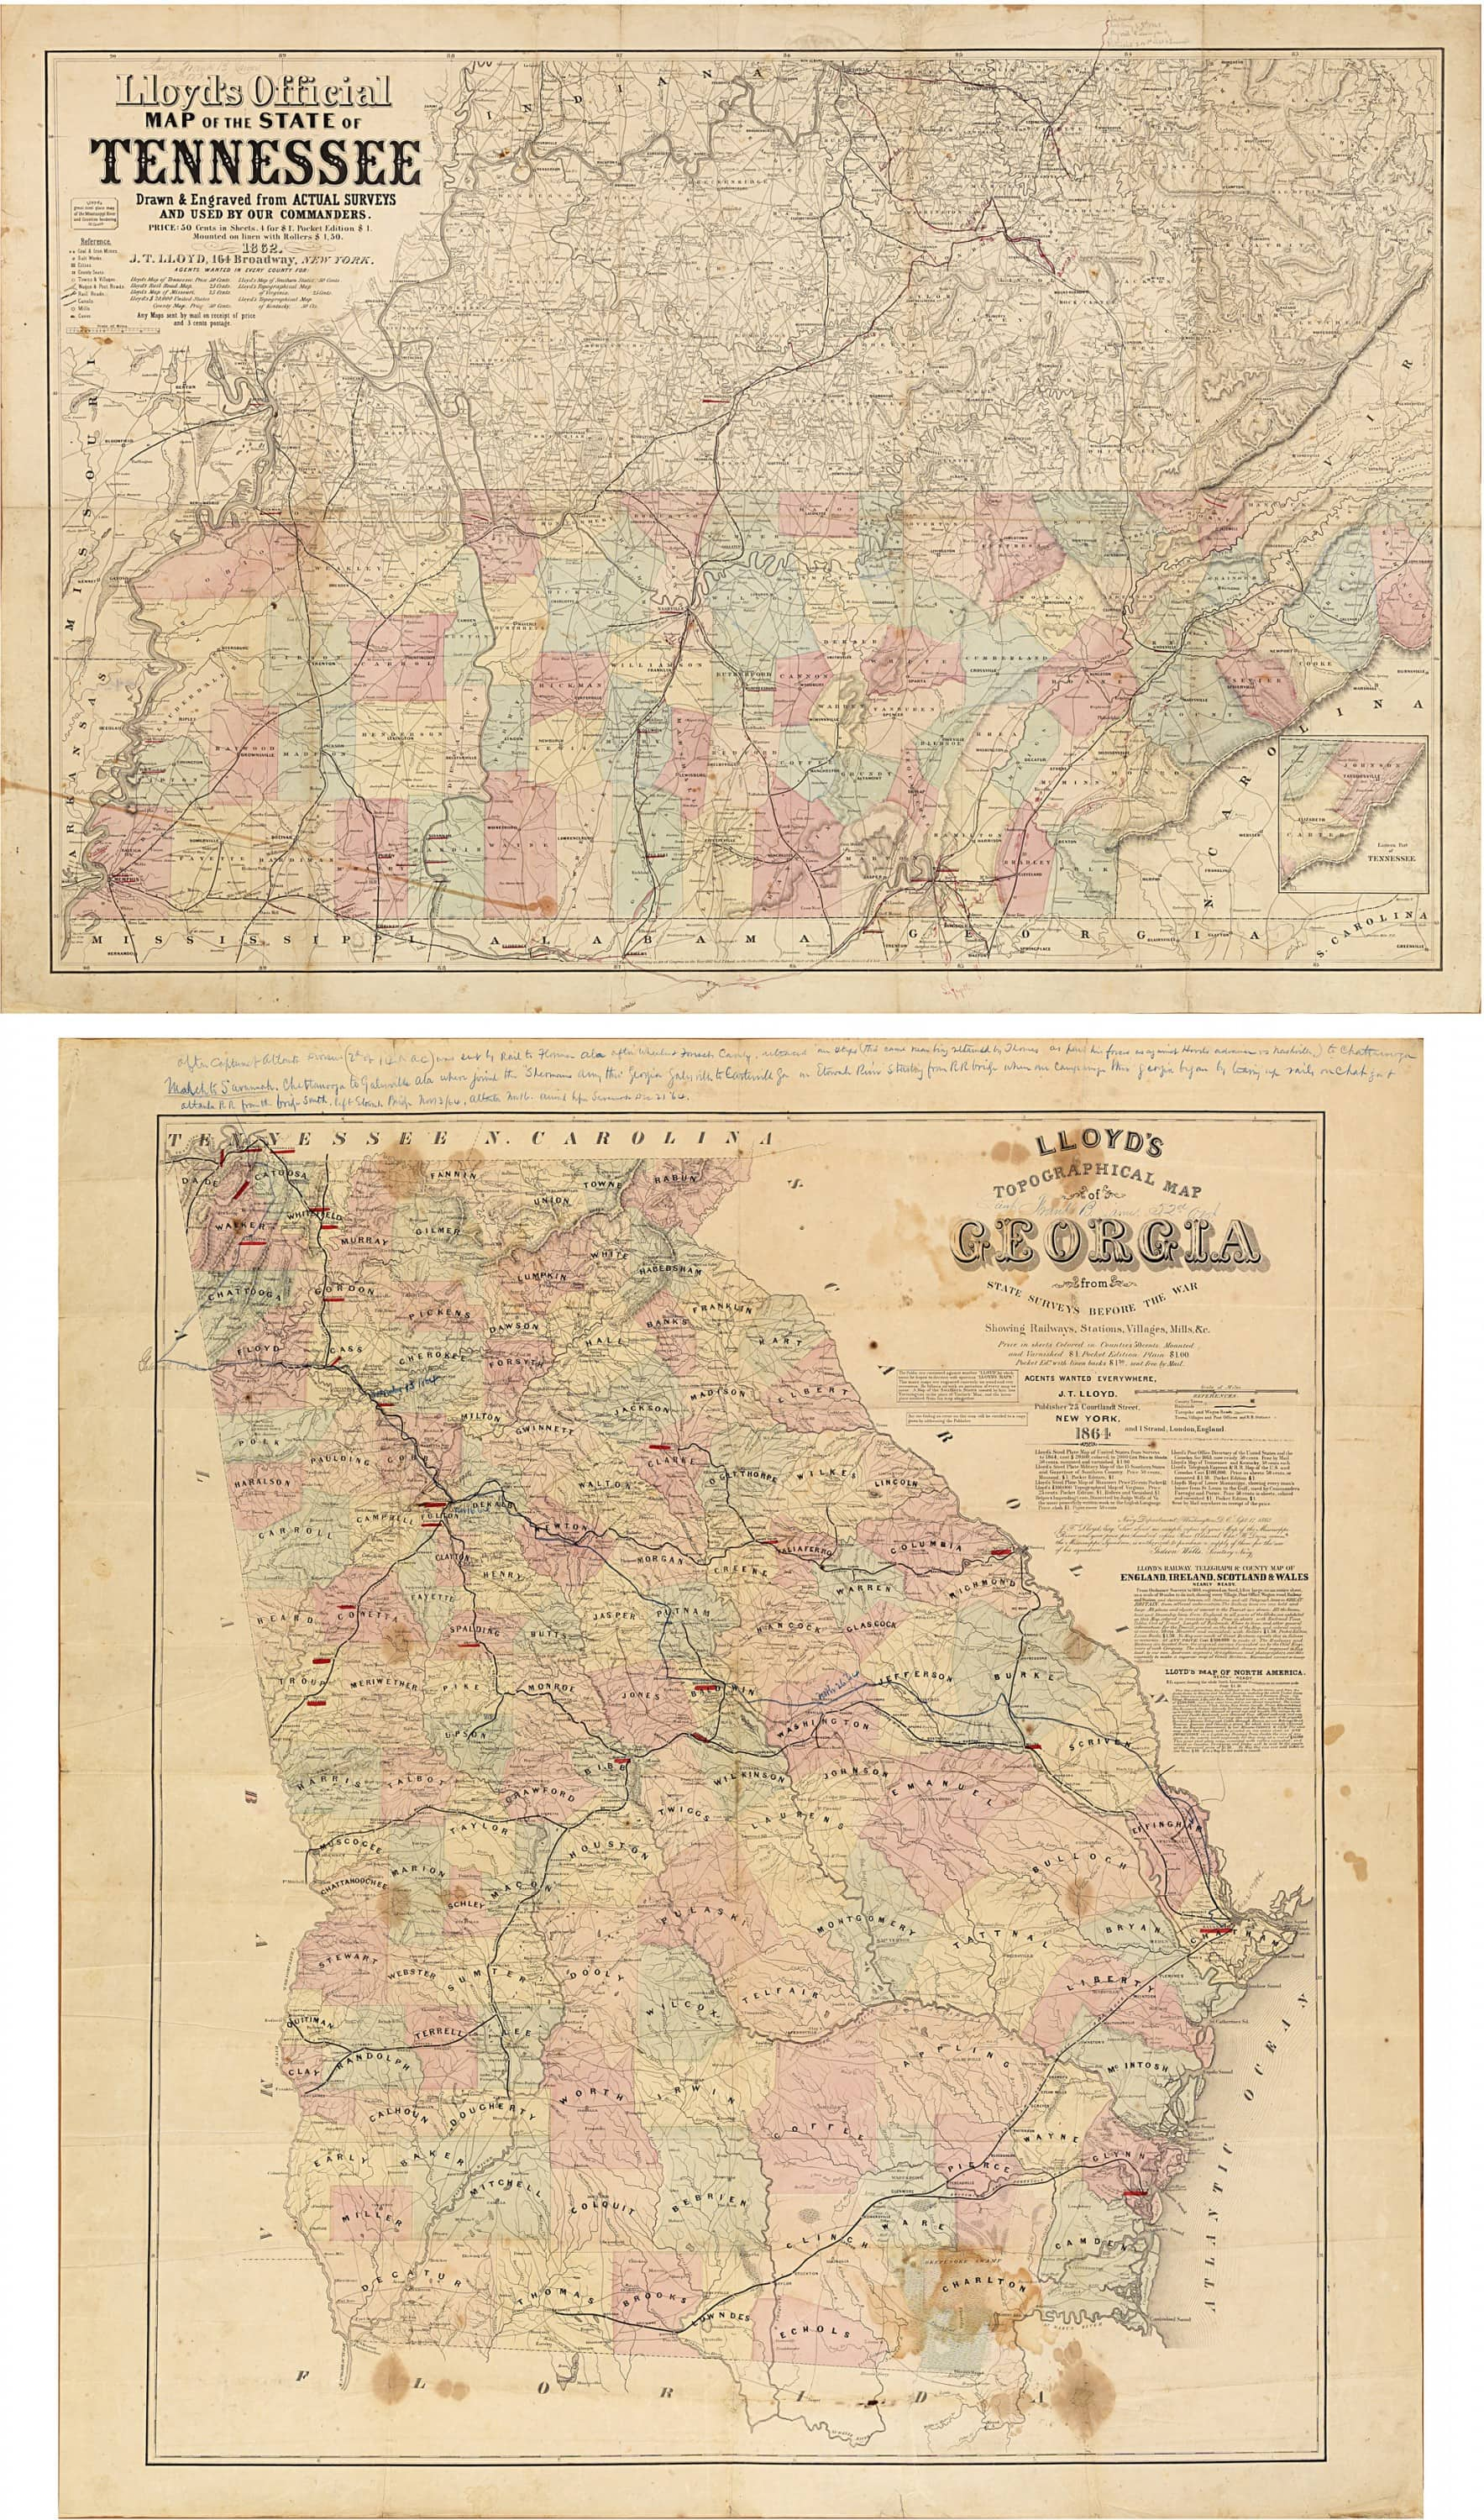 Important Civil Warera Maps Of Tennessee And Georgia, With Unique  Manuscript Additions By A Union Officer